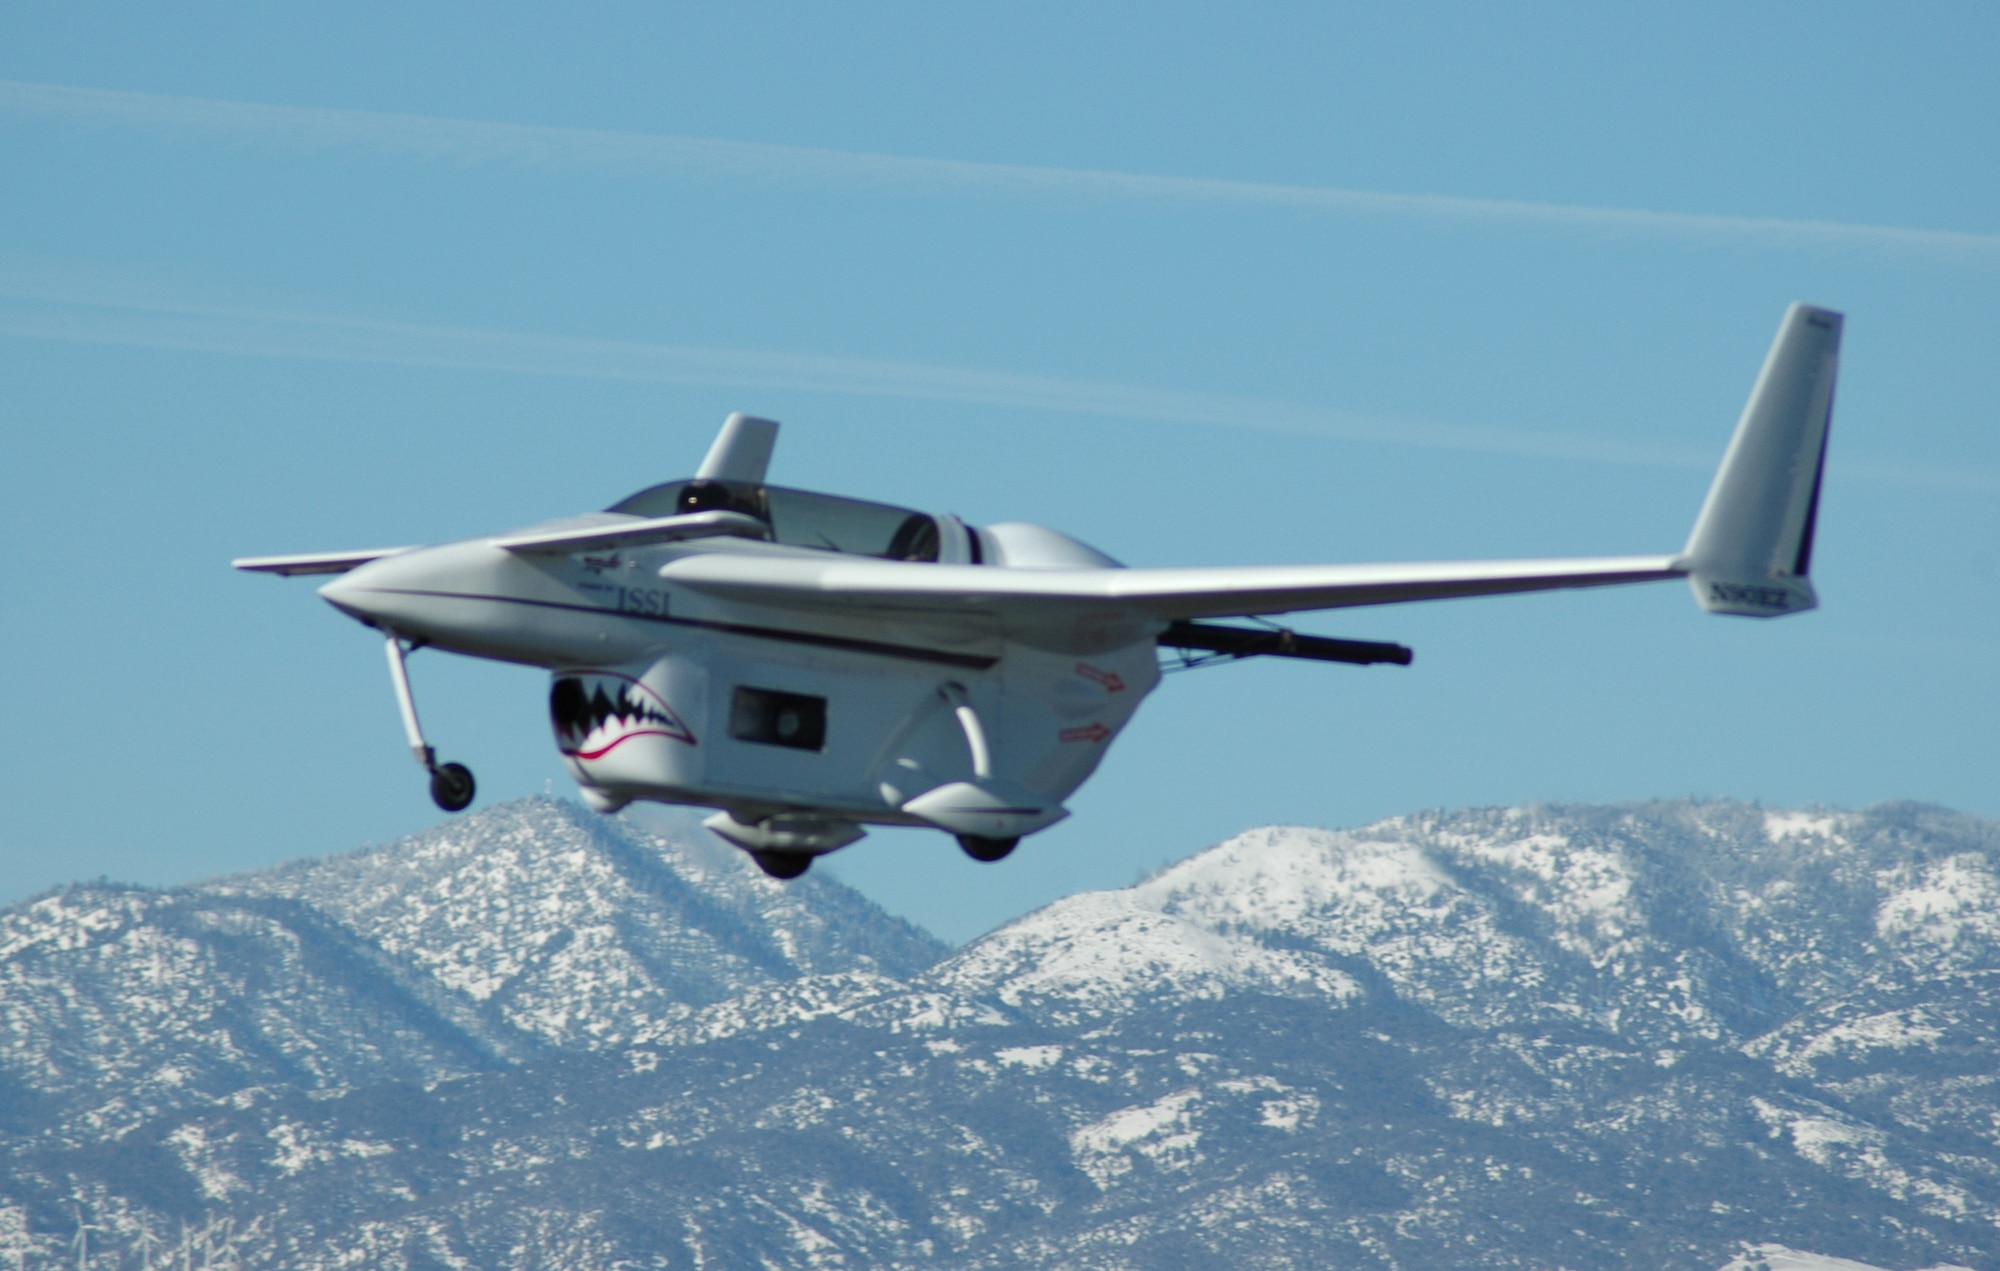 The Long E-Z aircraft, powered by the pulsed detonation engine, makes its history-making flight Jan. 31 at Mohave, Calif. Soon it will be on display at the National Museum of the U.S. Air Force at Wright-Patterson Air Force Base, Ohio. (Courtesy photo)